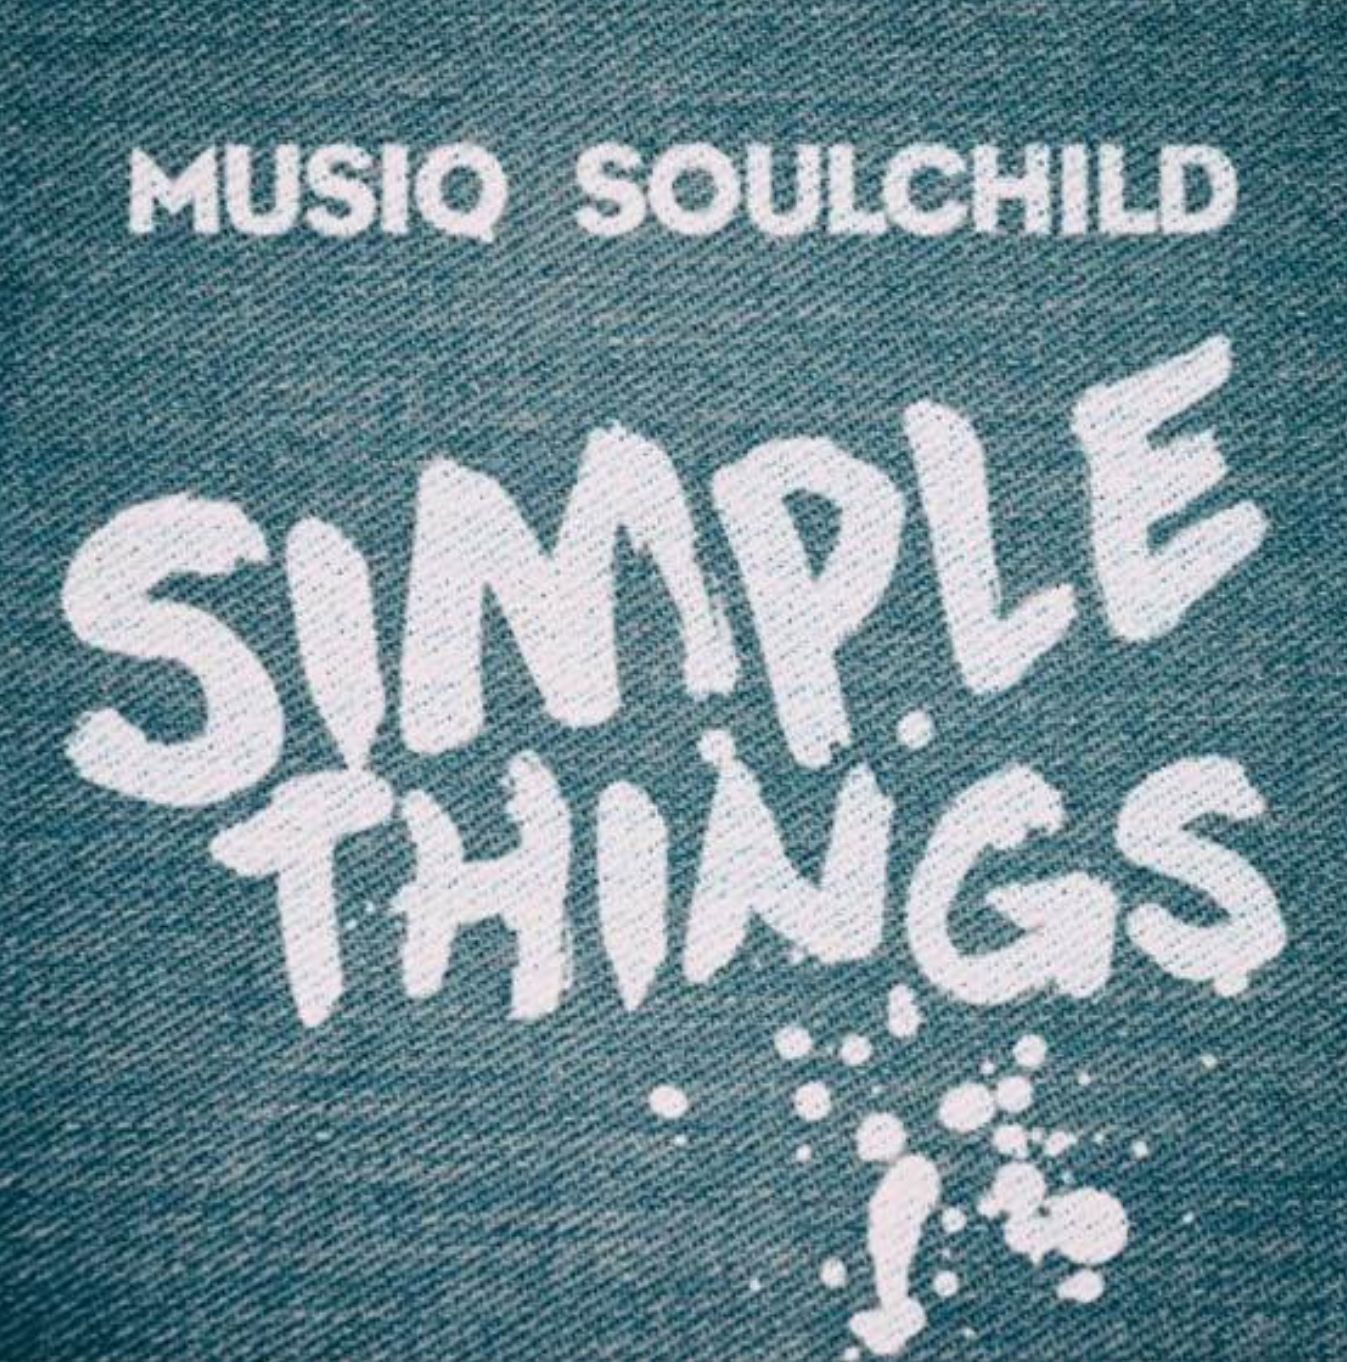 Musiq Soulchild Simple Things